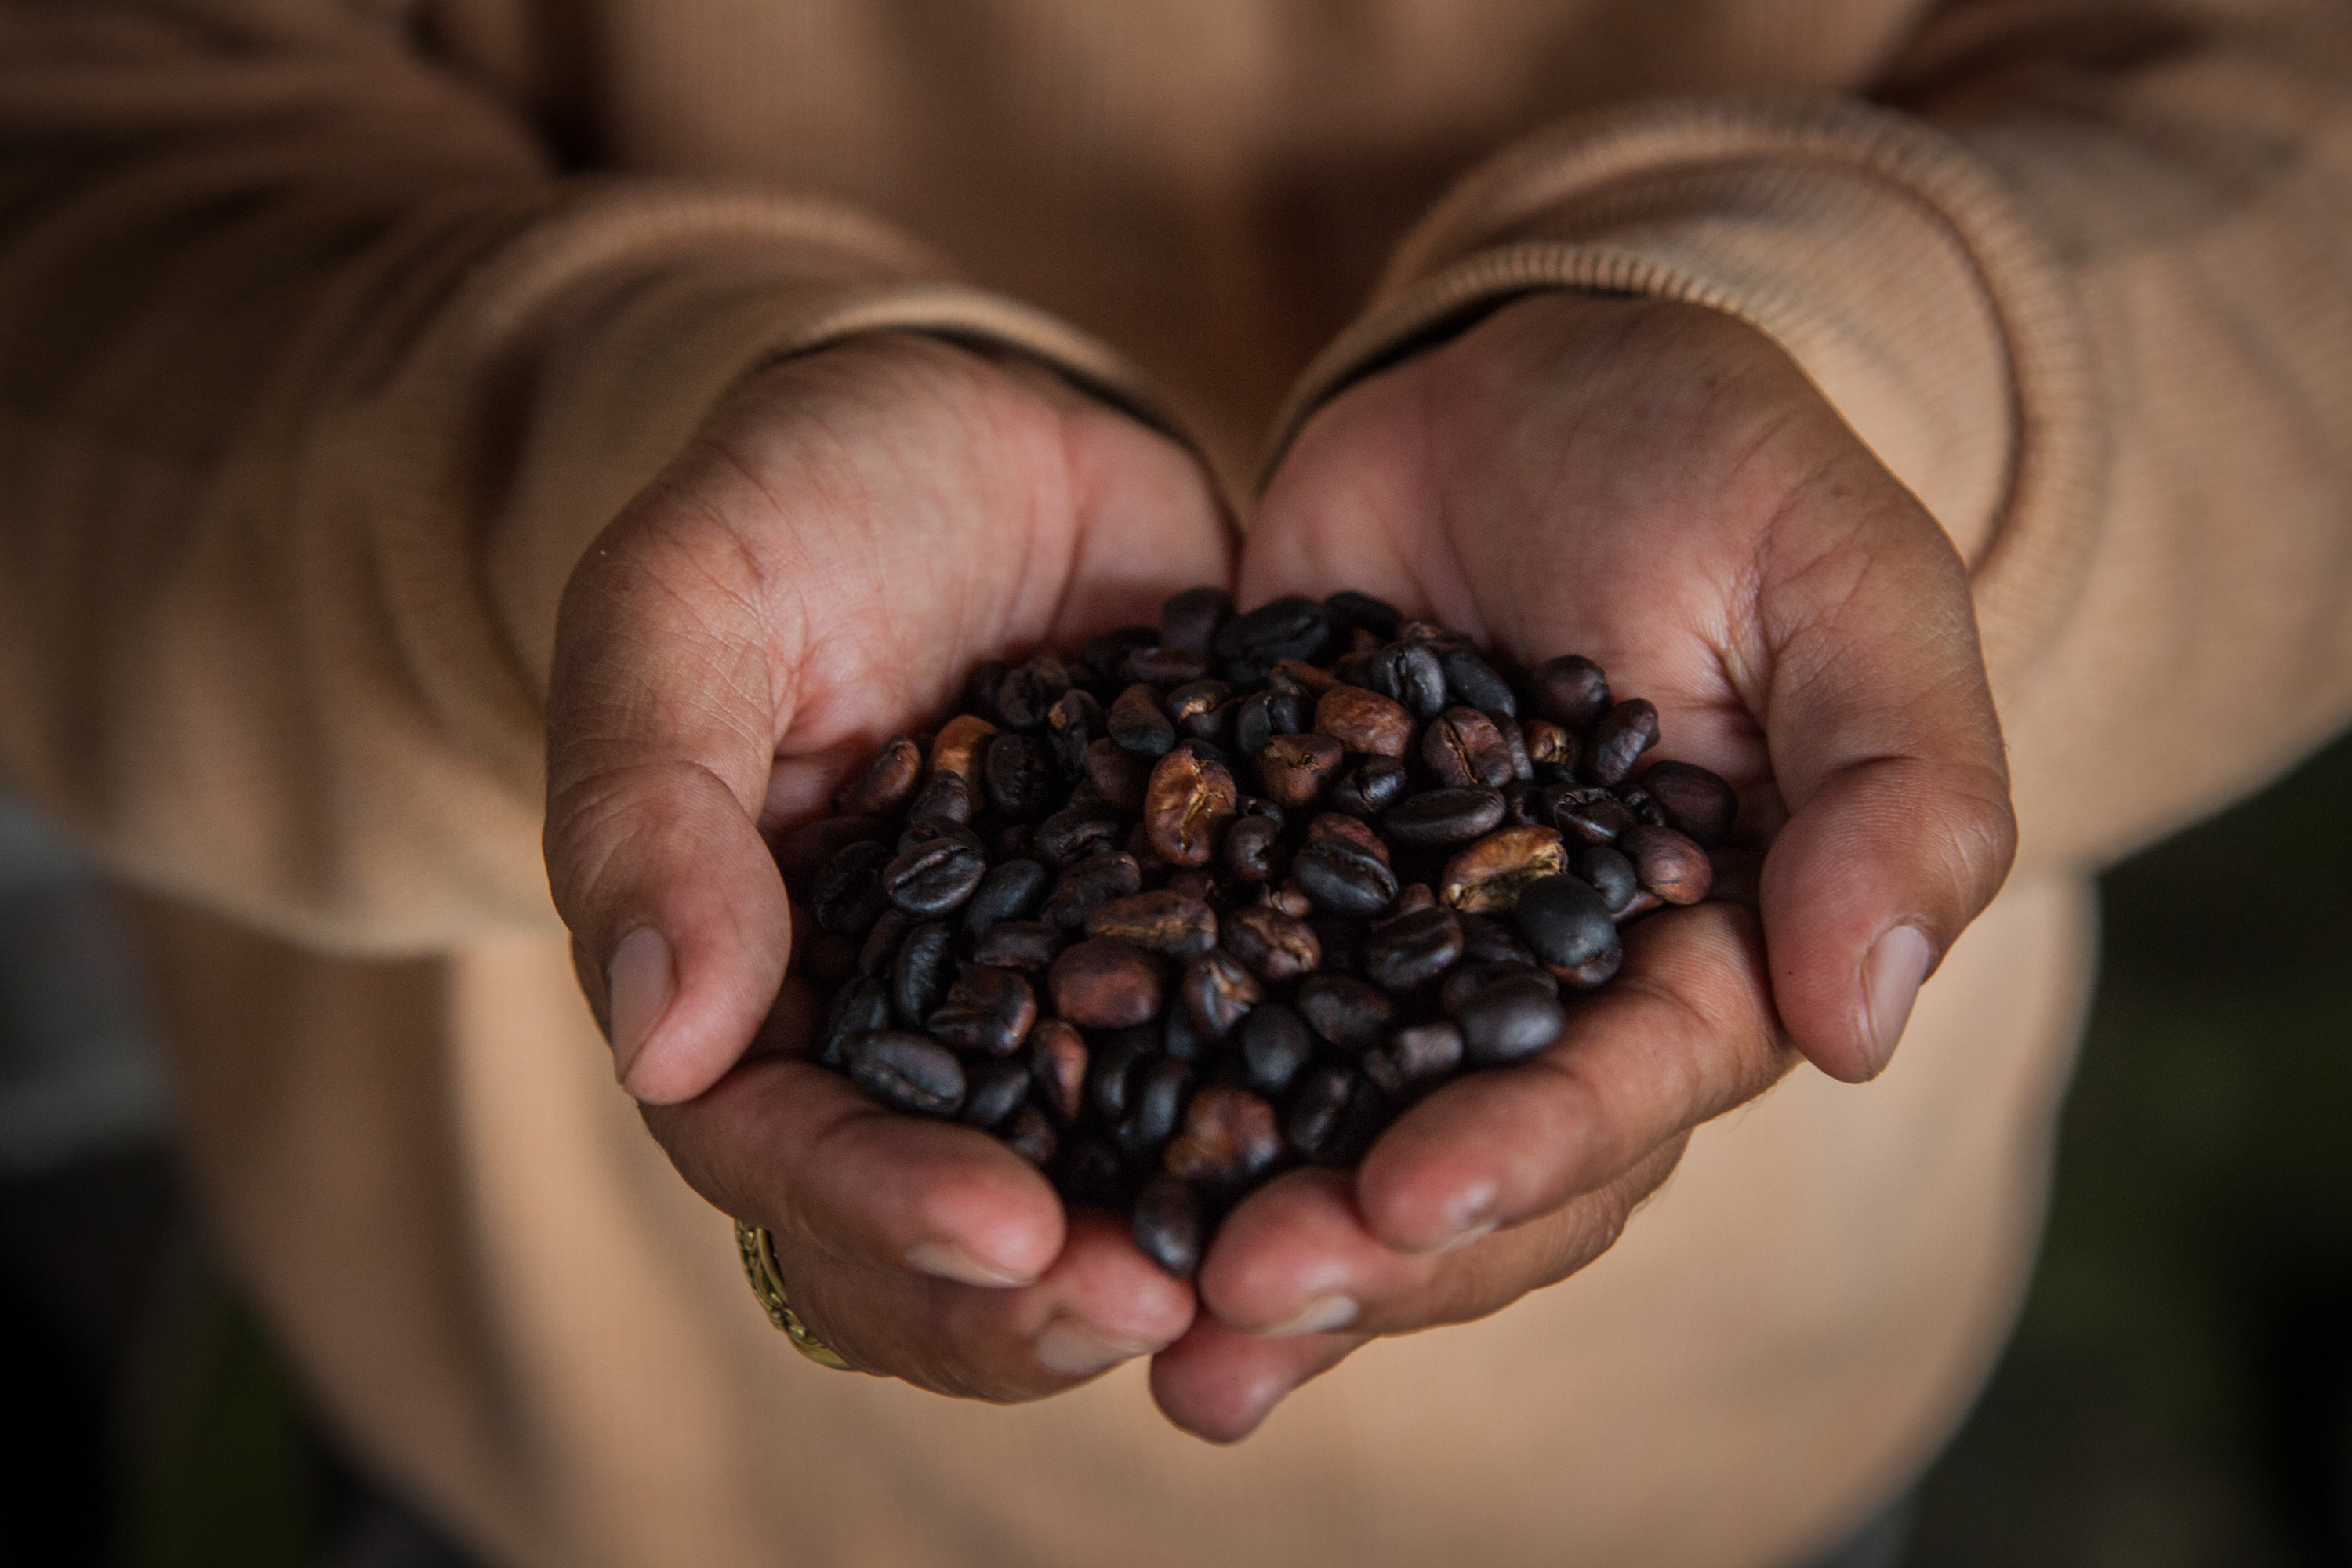 A man holds up roasted Kopi Luwak coffee seeds inside a 'Kopi Luwak' or Civet coffee farm and cafe on May 27, 2013 in Tampaksiring, Bali, Indonesia.